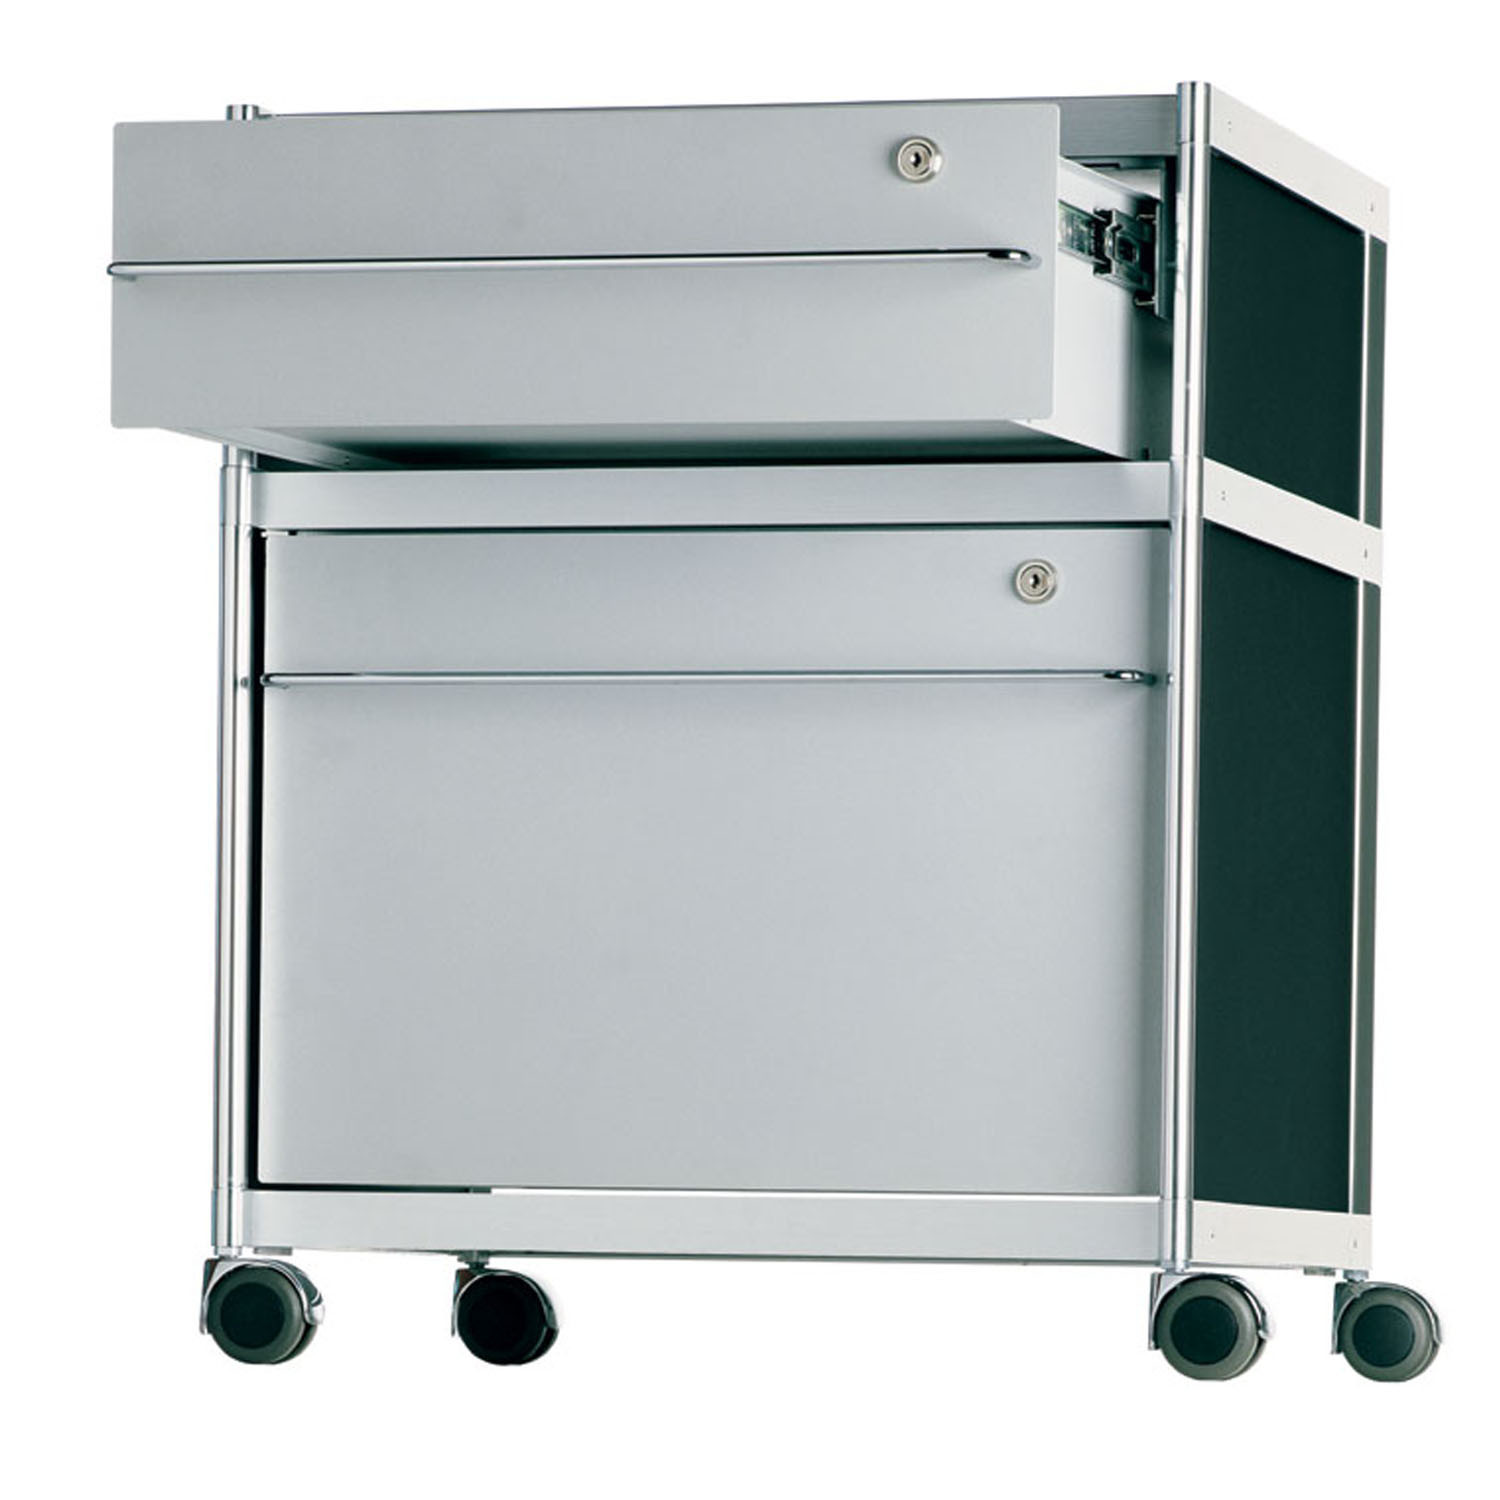 SEC Mobile Pedestal - 2 Drawers